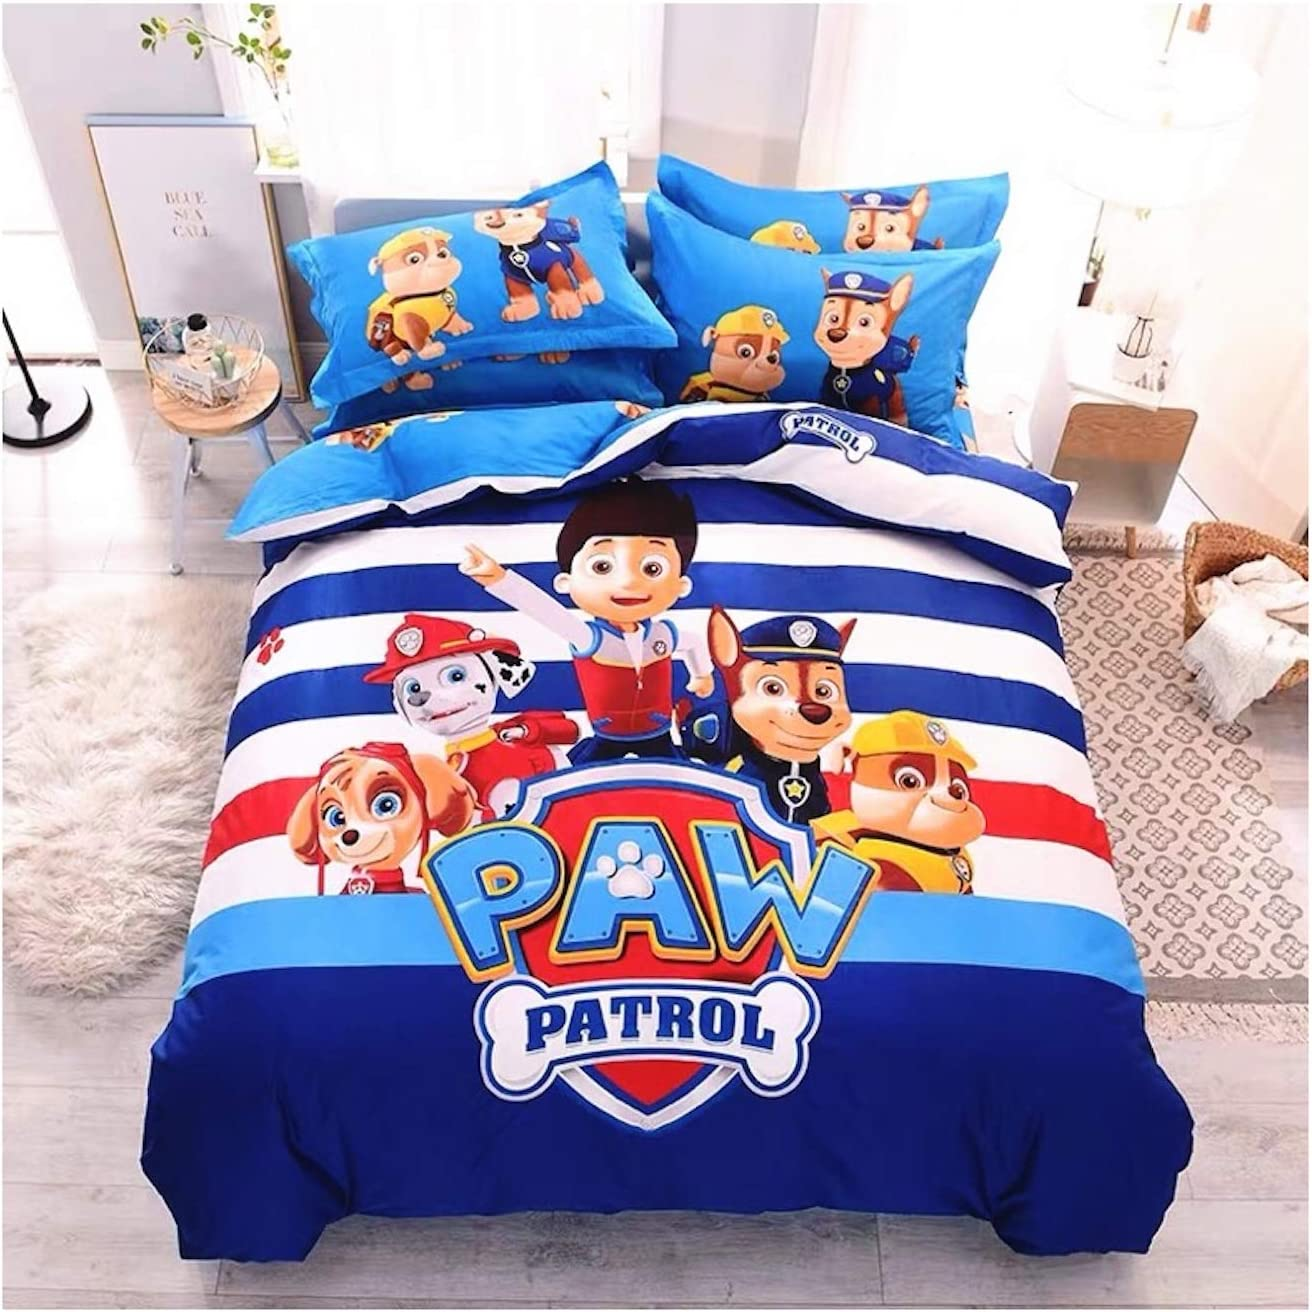 Peachy Baby Featuring Paw Patrol Bedding Sheet Set Queen King Twin Double Full Size 【Free Express Shipping】【100% Cotton】 Cartoon Ryder Chase Marshall 【No Comforter Included】 (Queen/Double/Full Size)